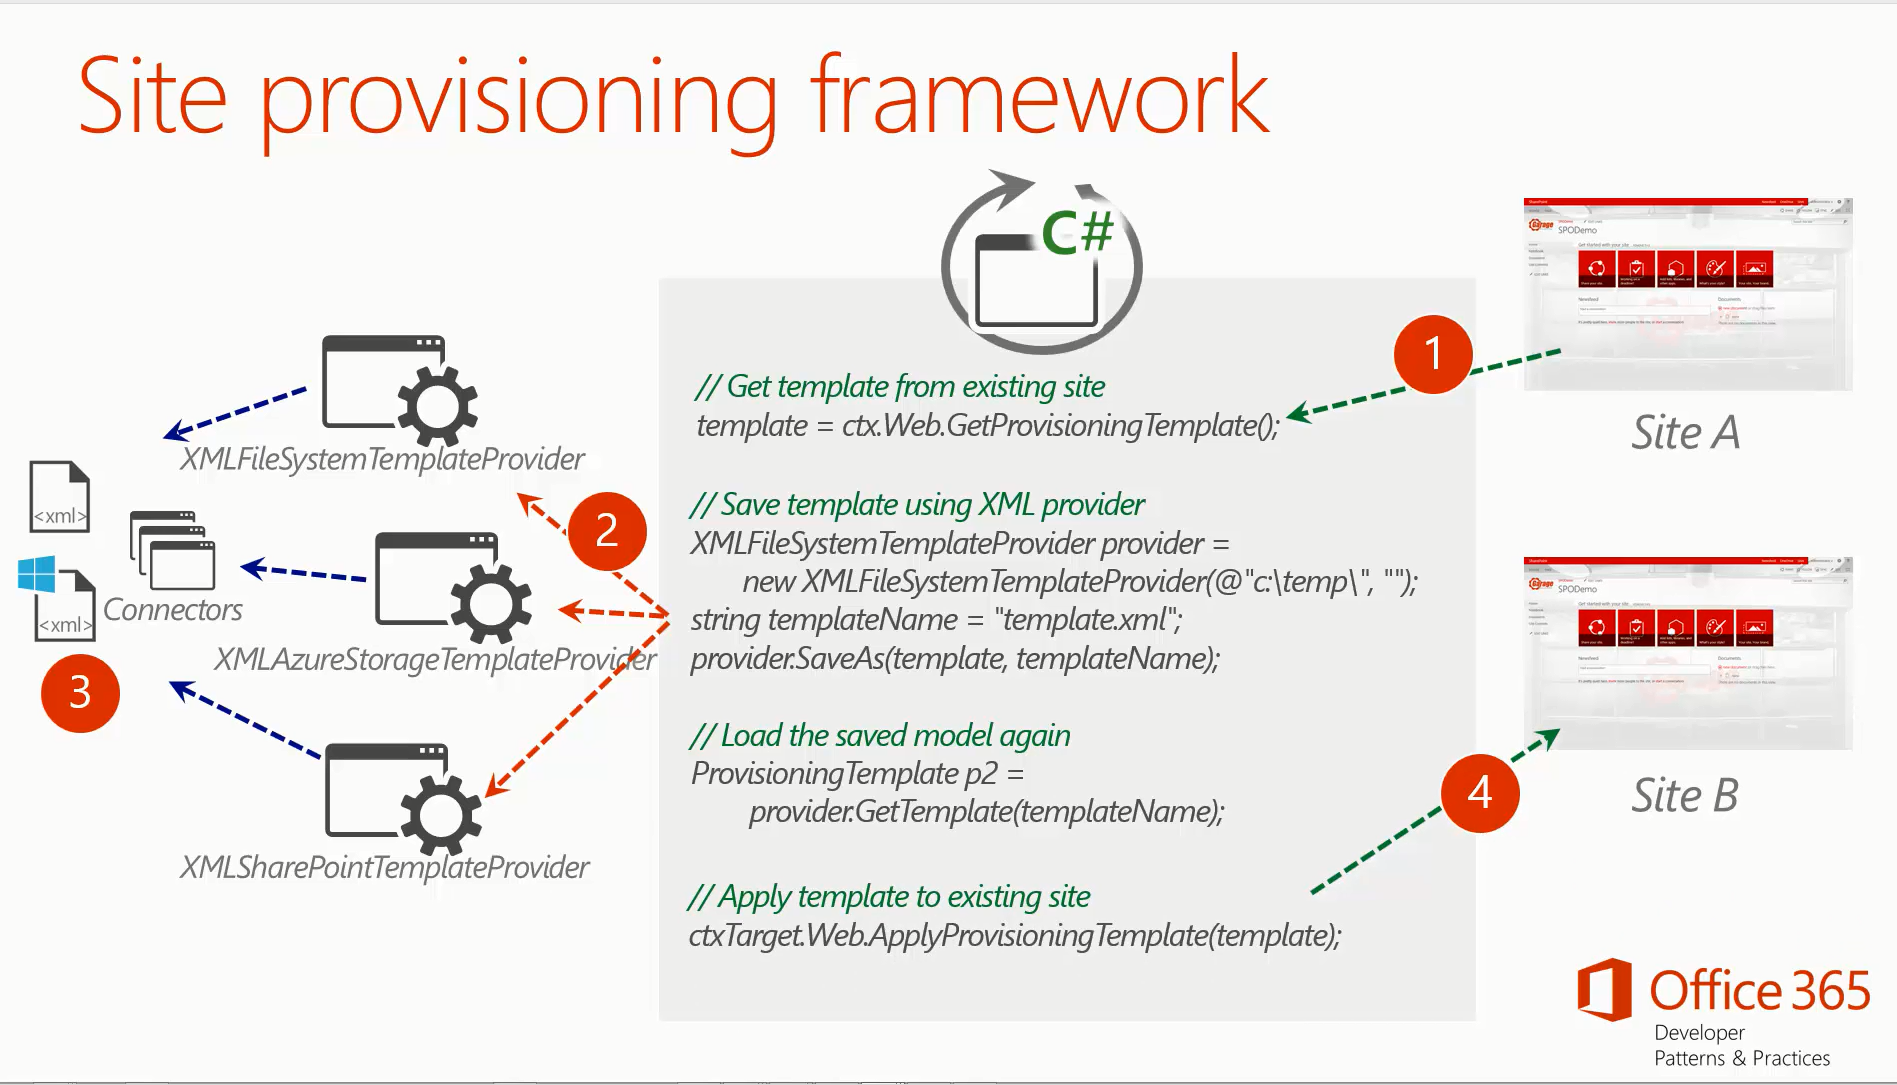 Introducing the PnP provisioning engine | Microsoft Docs